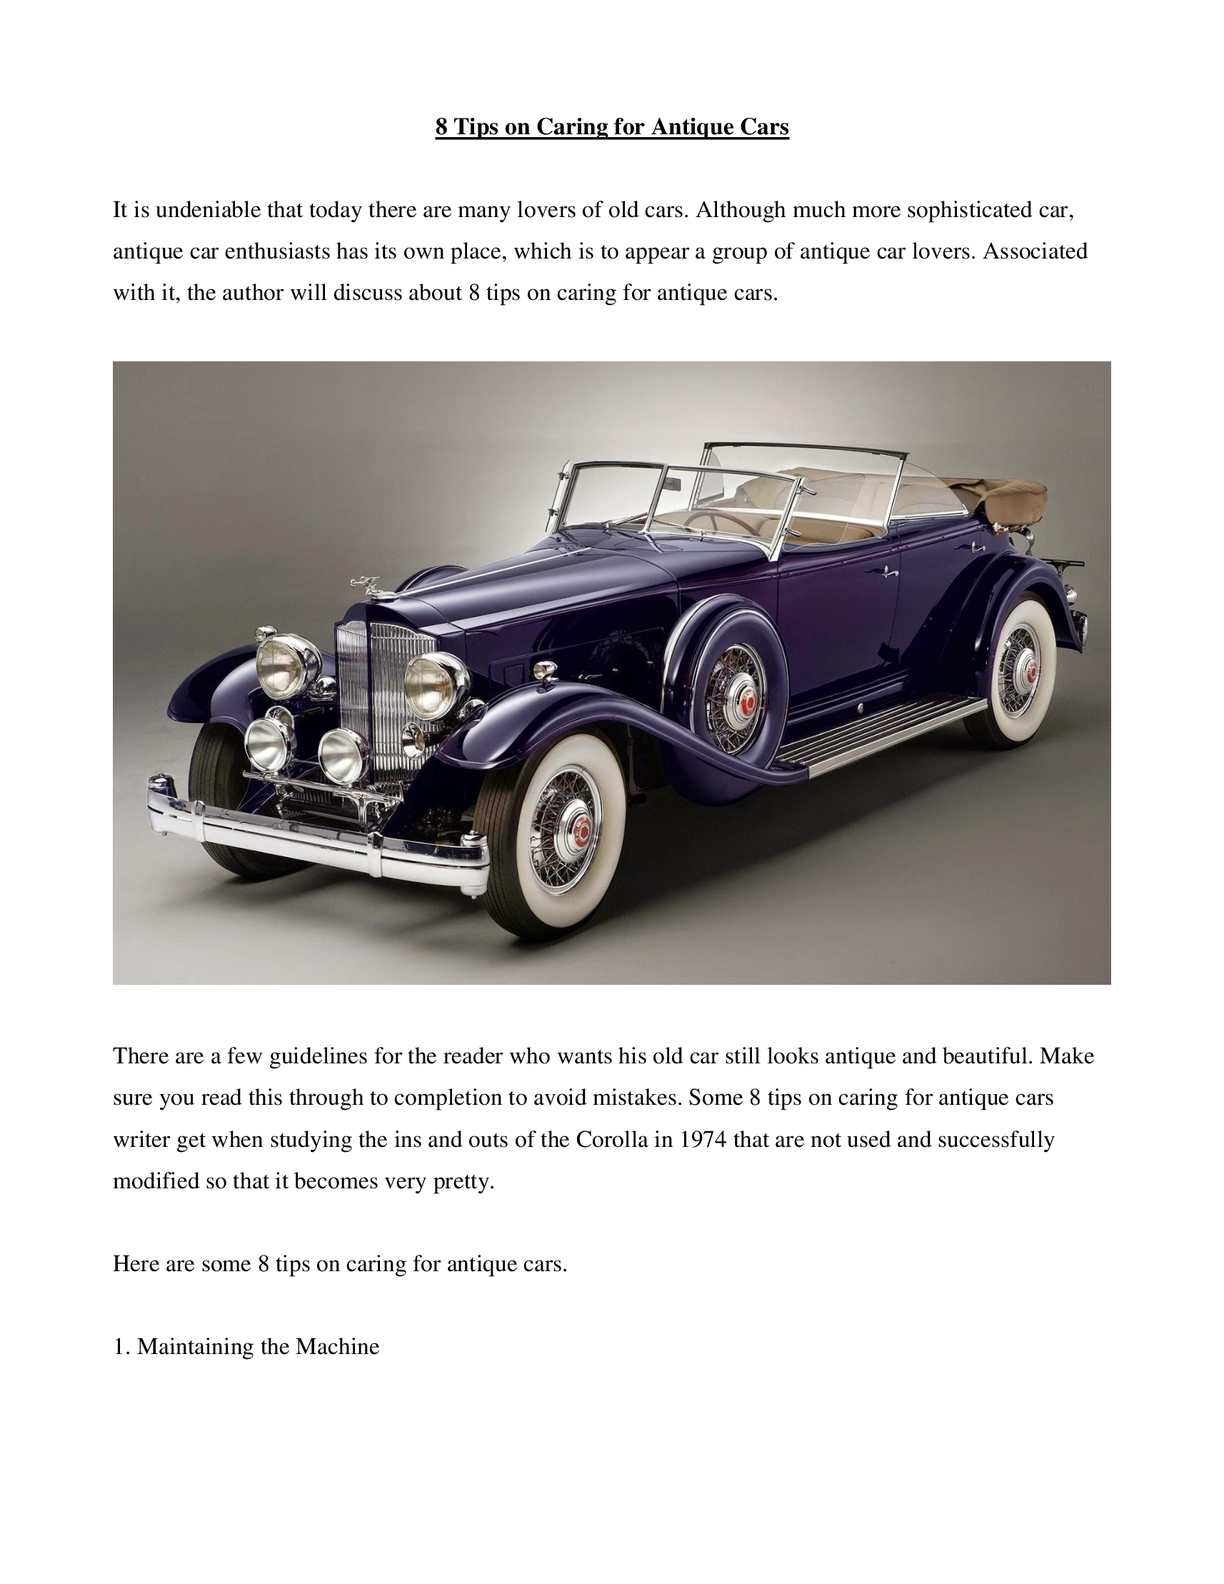 Calaméo - 8 Tips On Caring For Antique Cars